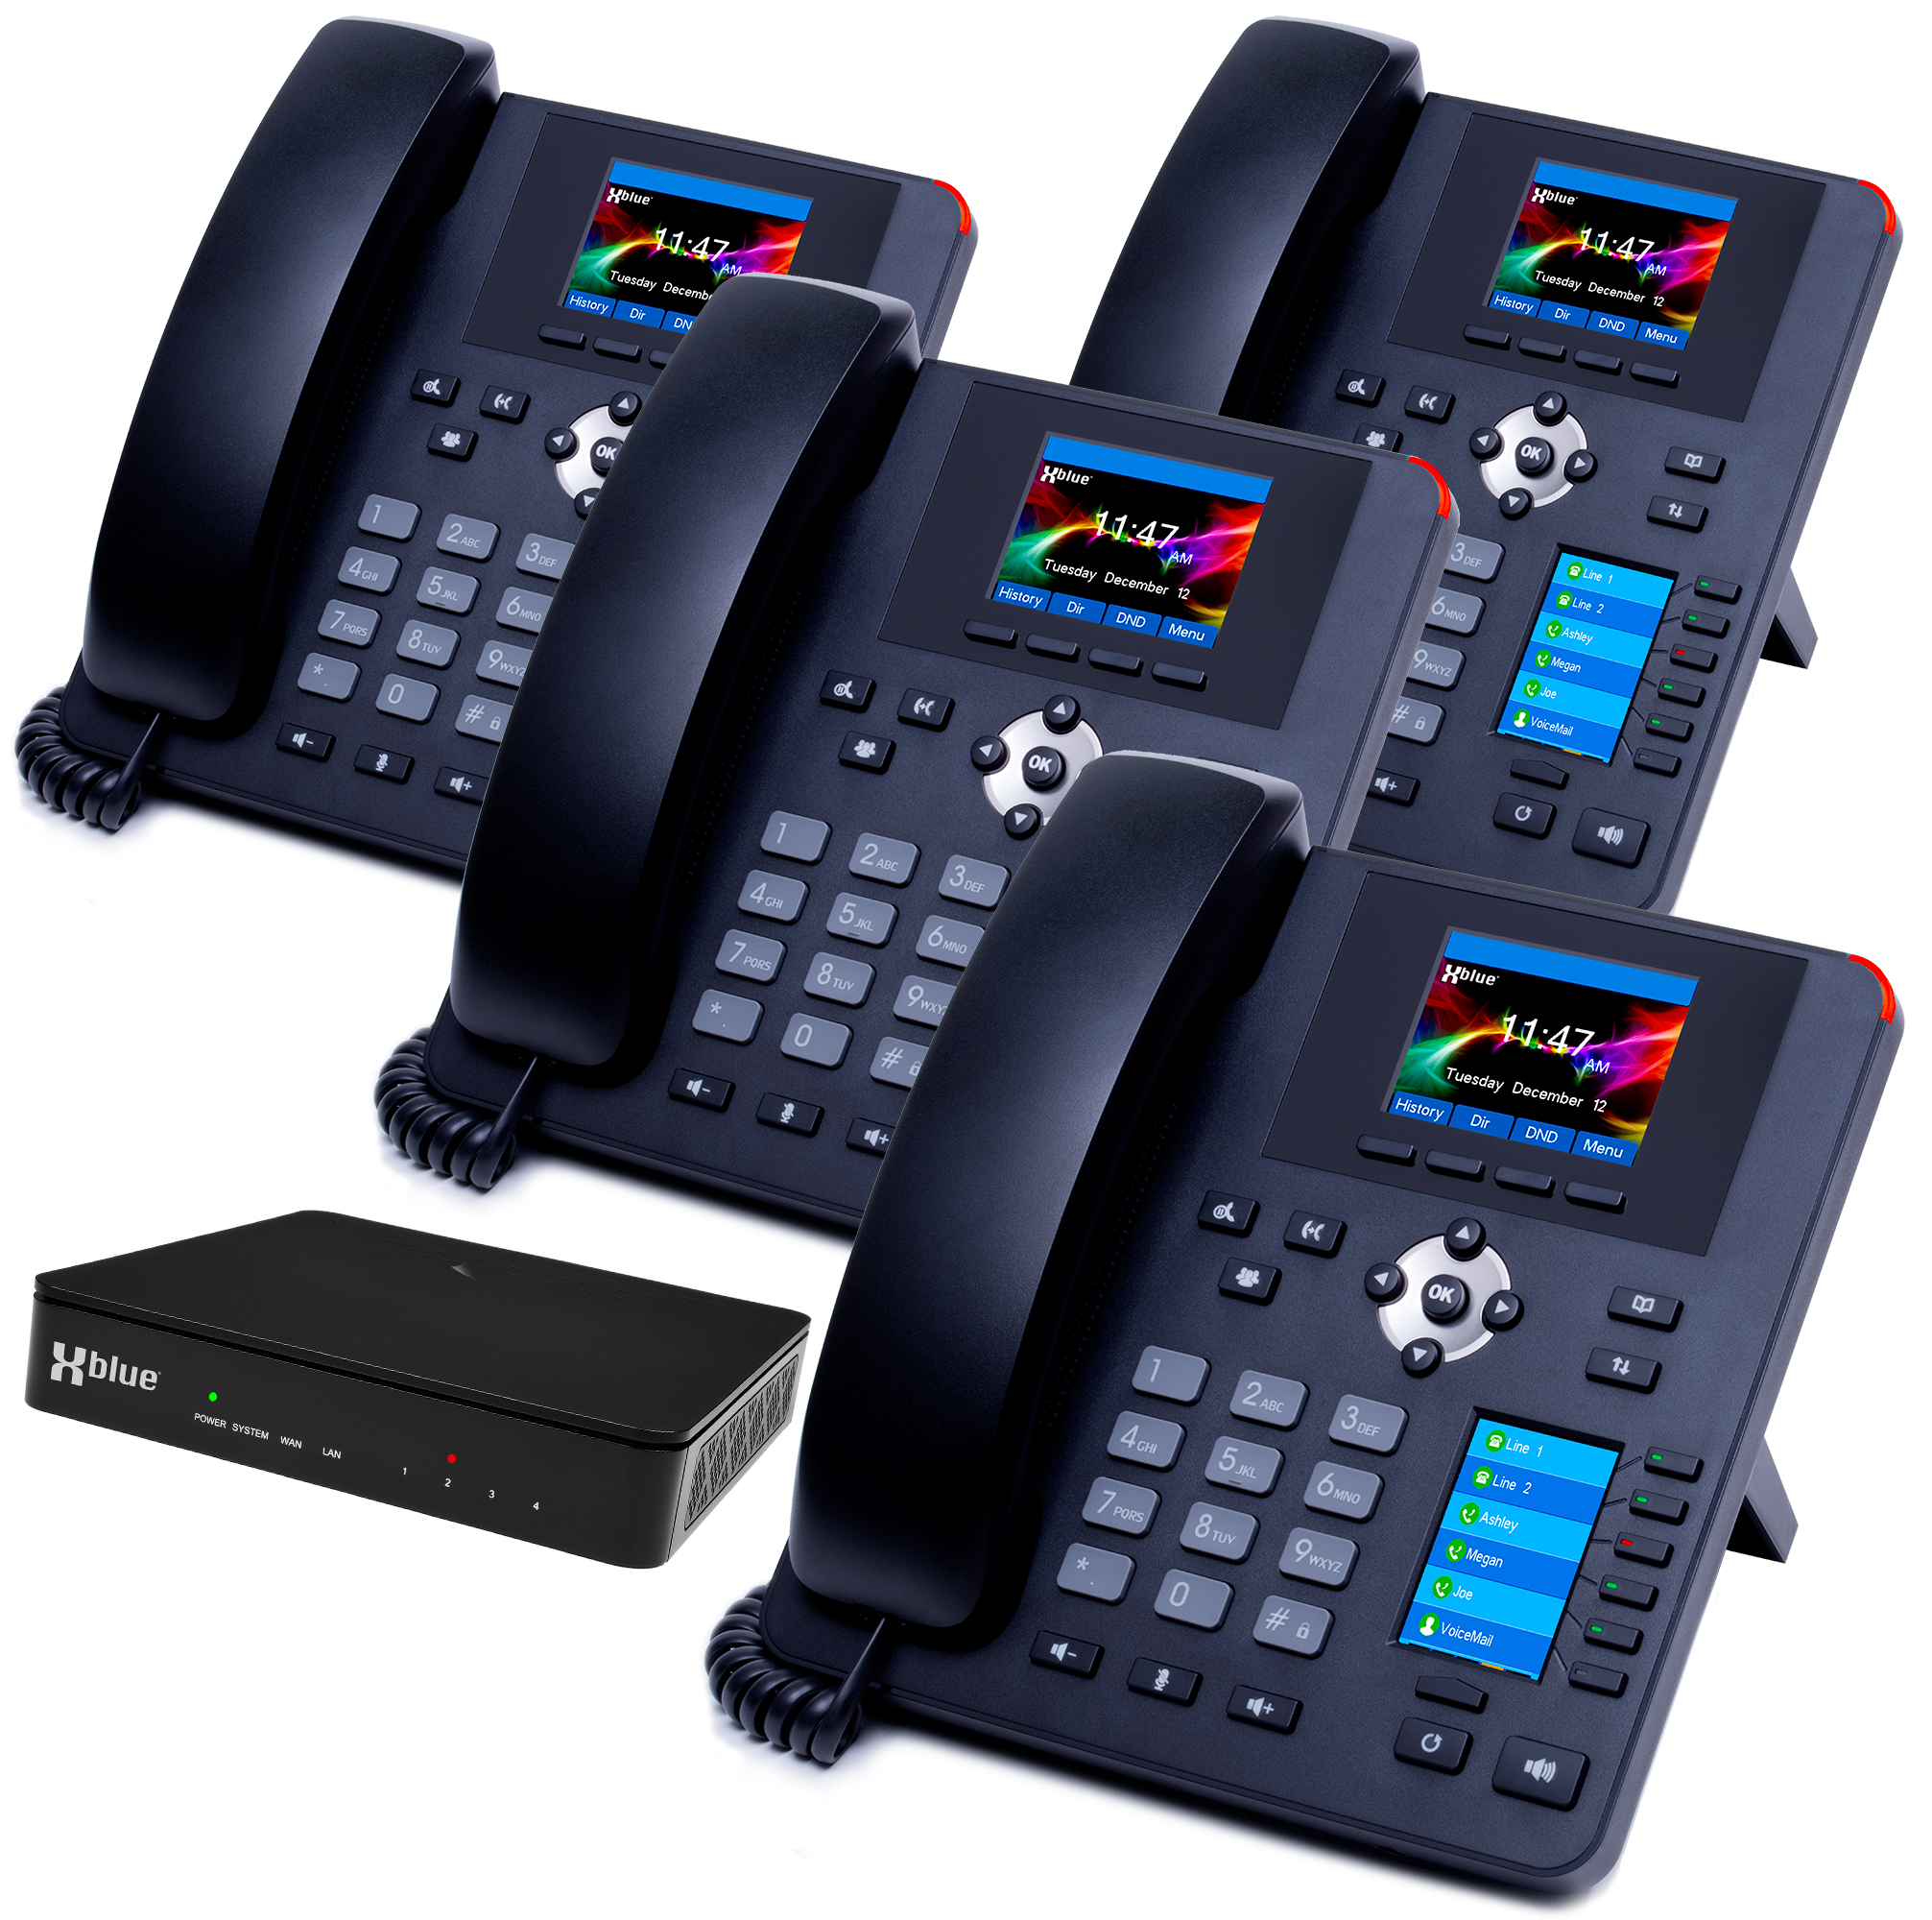 Compare Xblue Phone Systems To See Which One Right For You